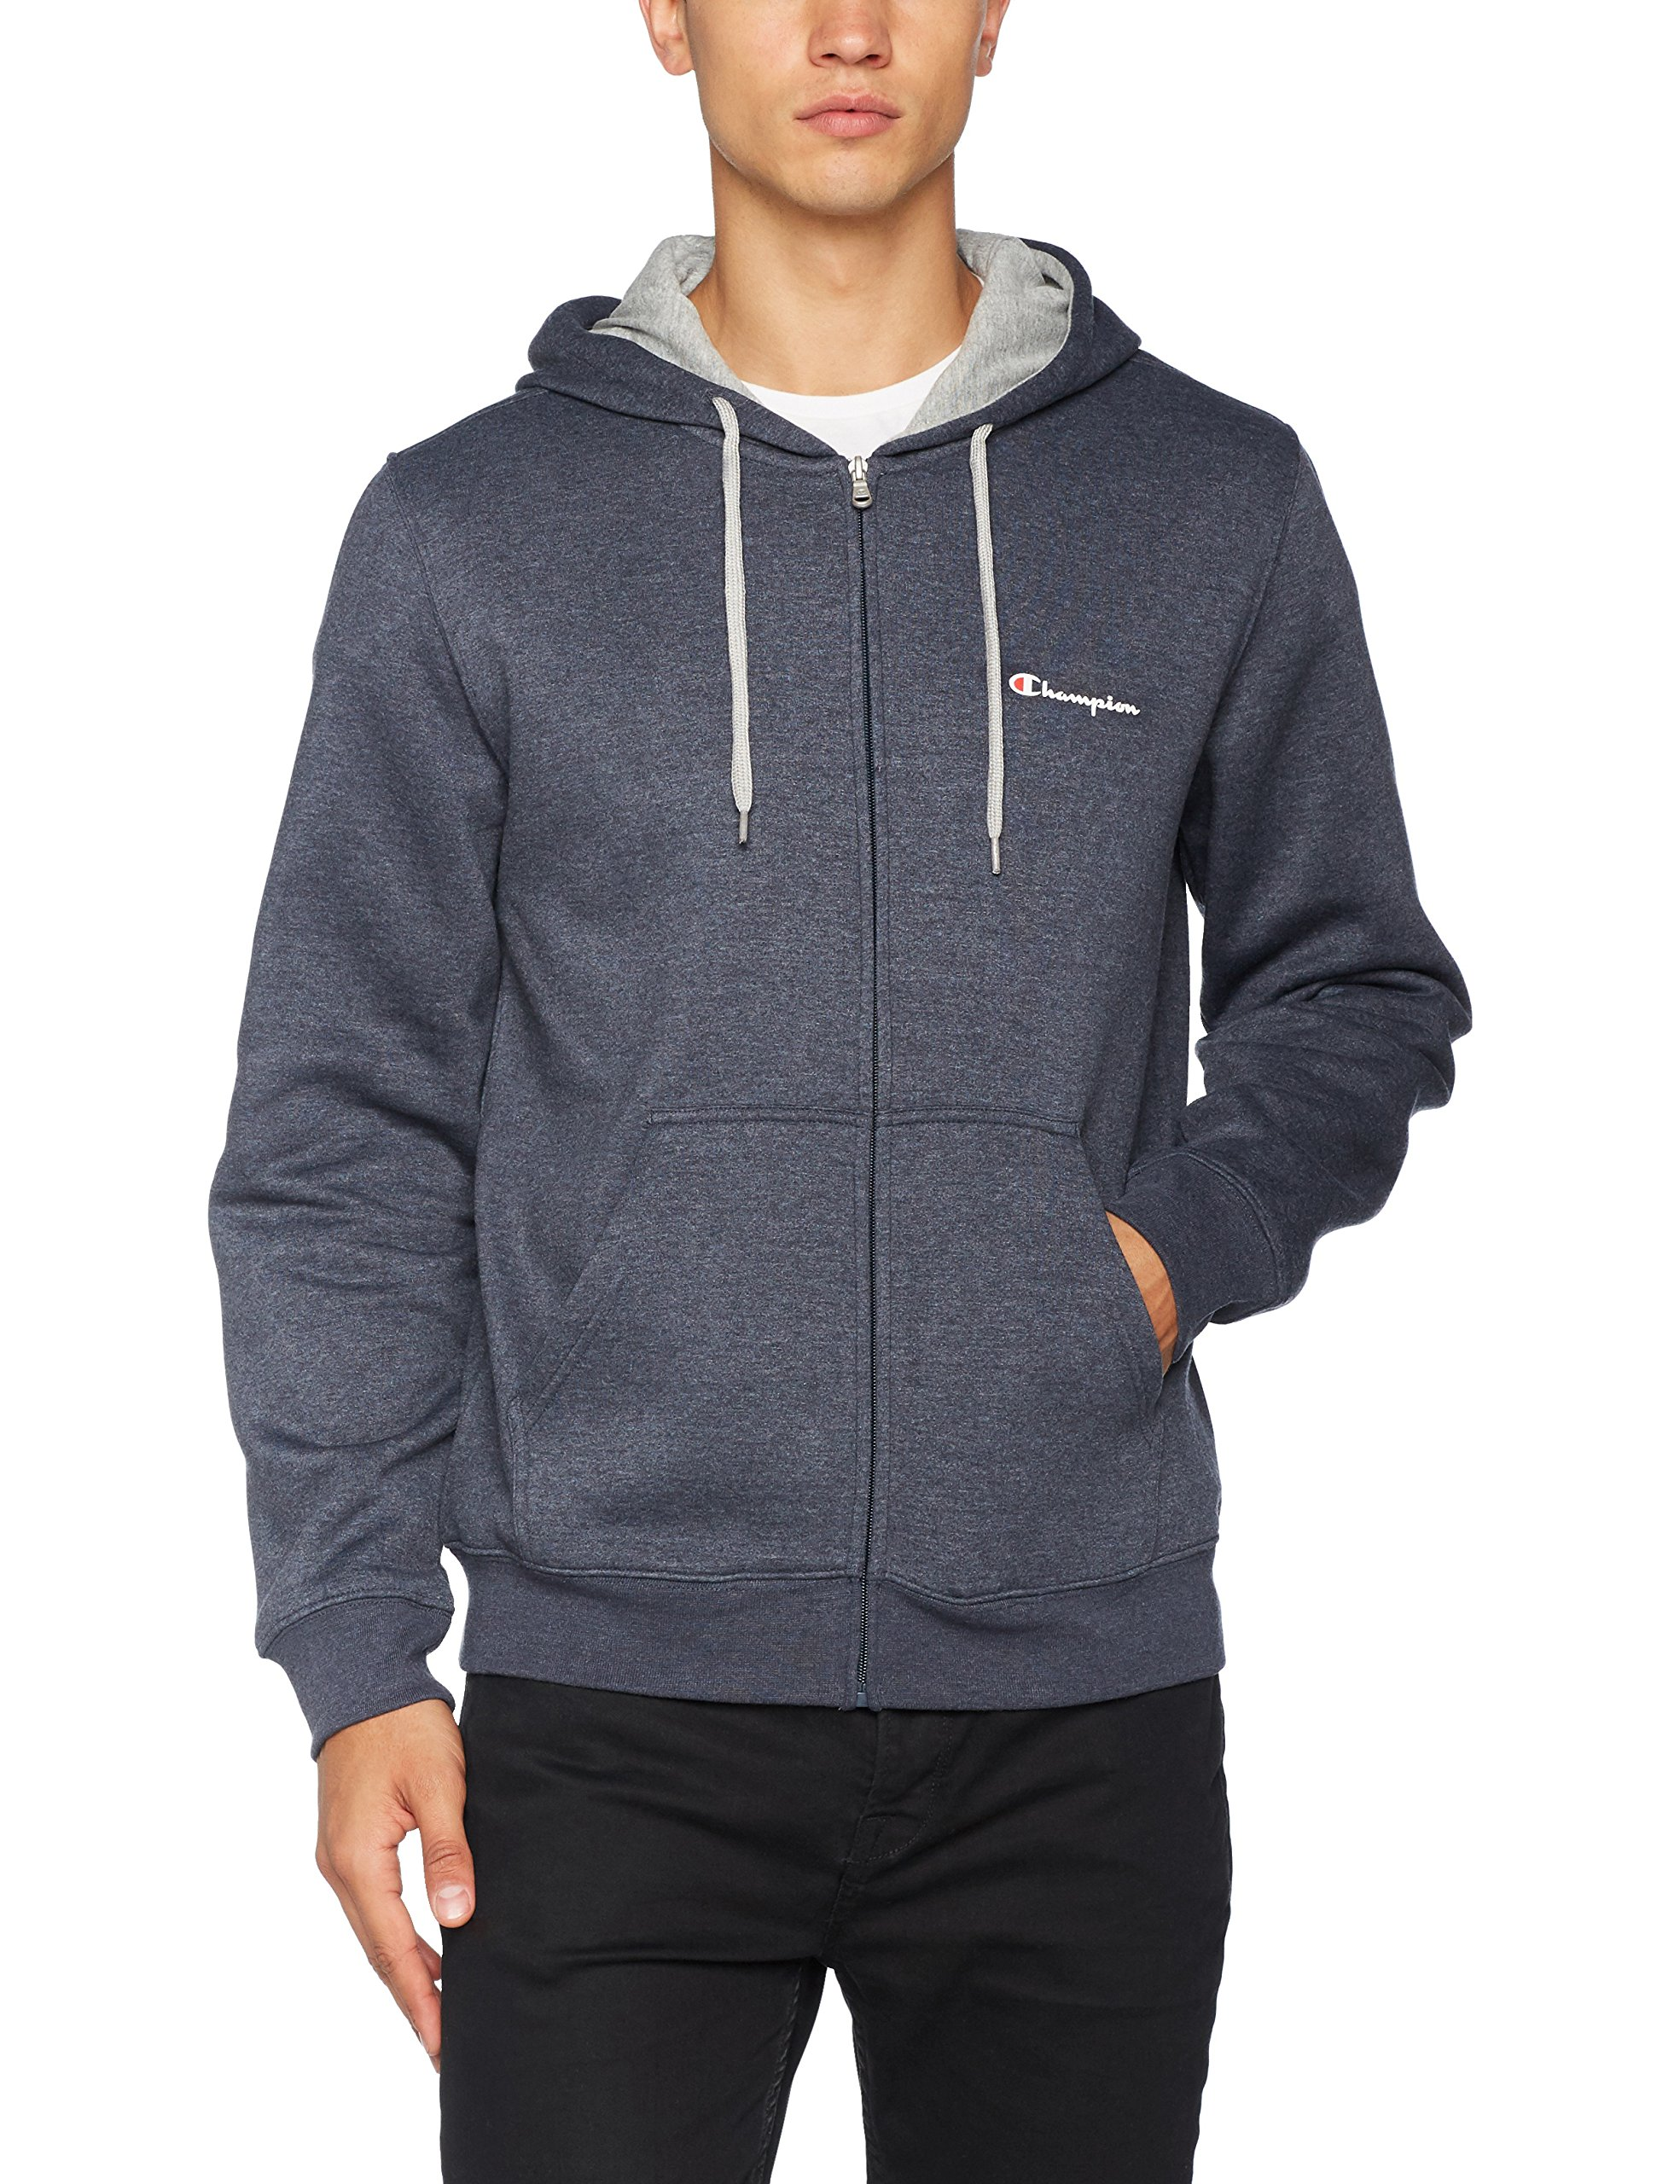 contemporary Graphics Champion Xl Fabricant Bleu À large X taille Hooded Zip Sweat znny Full Homme Capuche Sweatshirt shirt aqtxCTIw